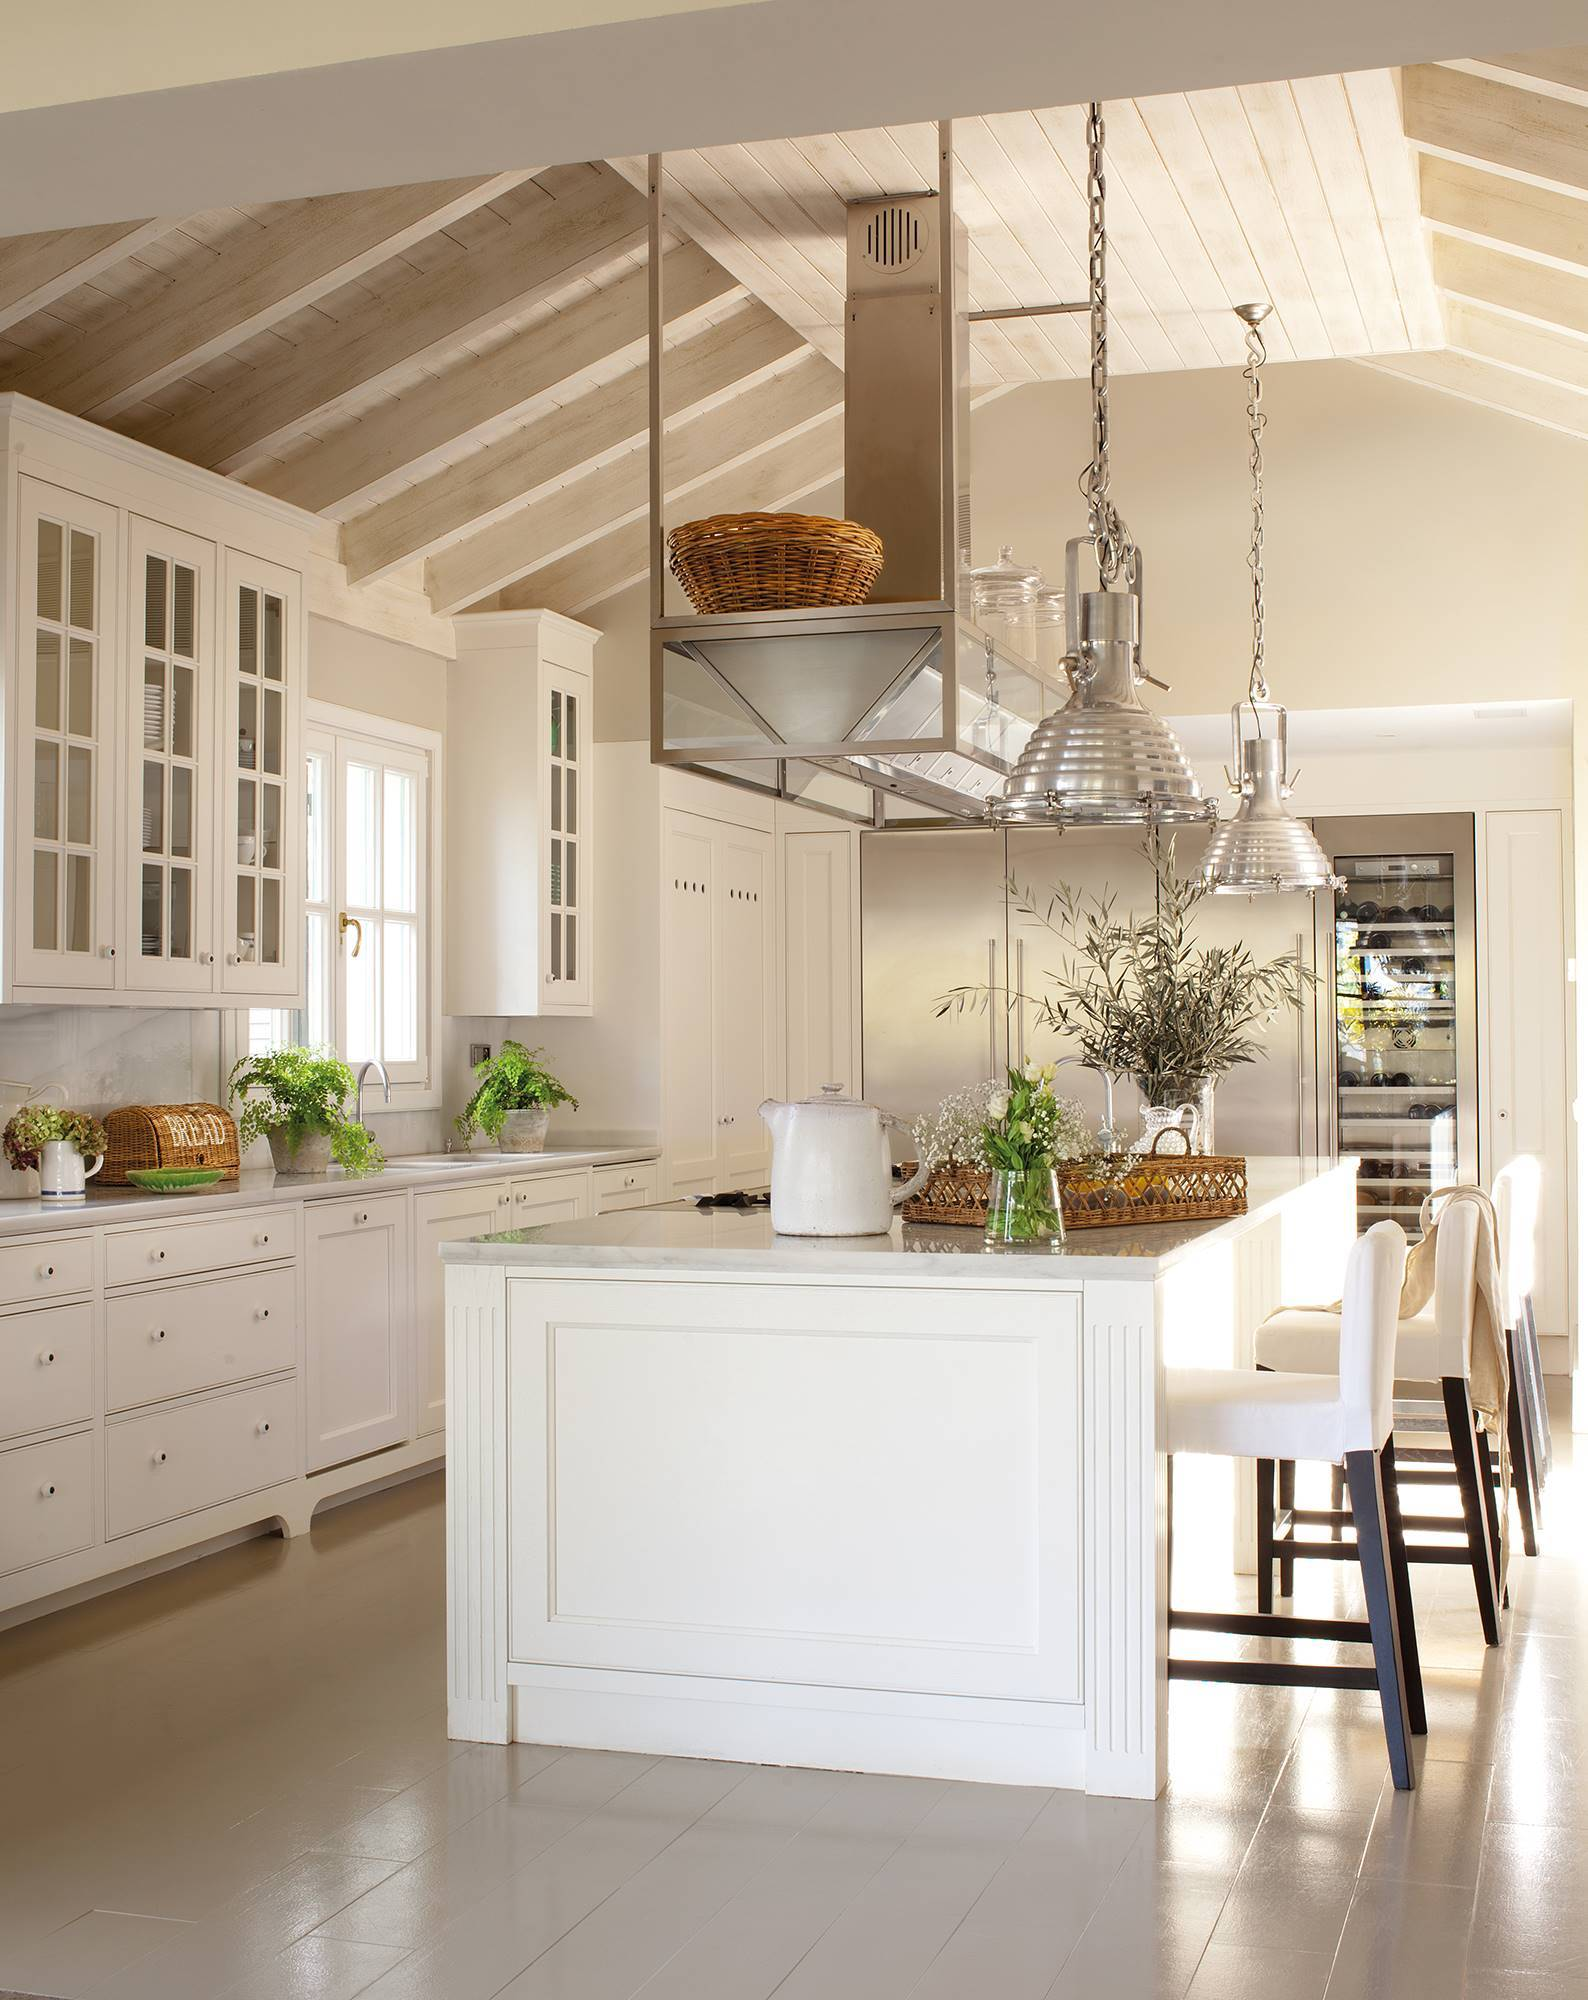 white-kitchen-with-gable-roof-and-large-central-island-with-stool-area -00376839 e55fc06b 1588x2000.  With touches of metal